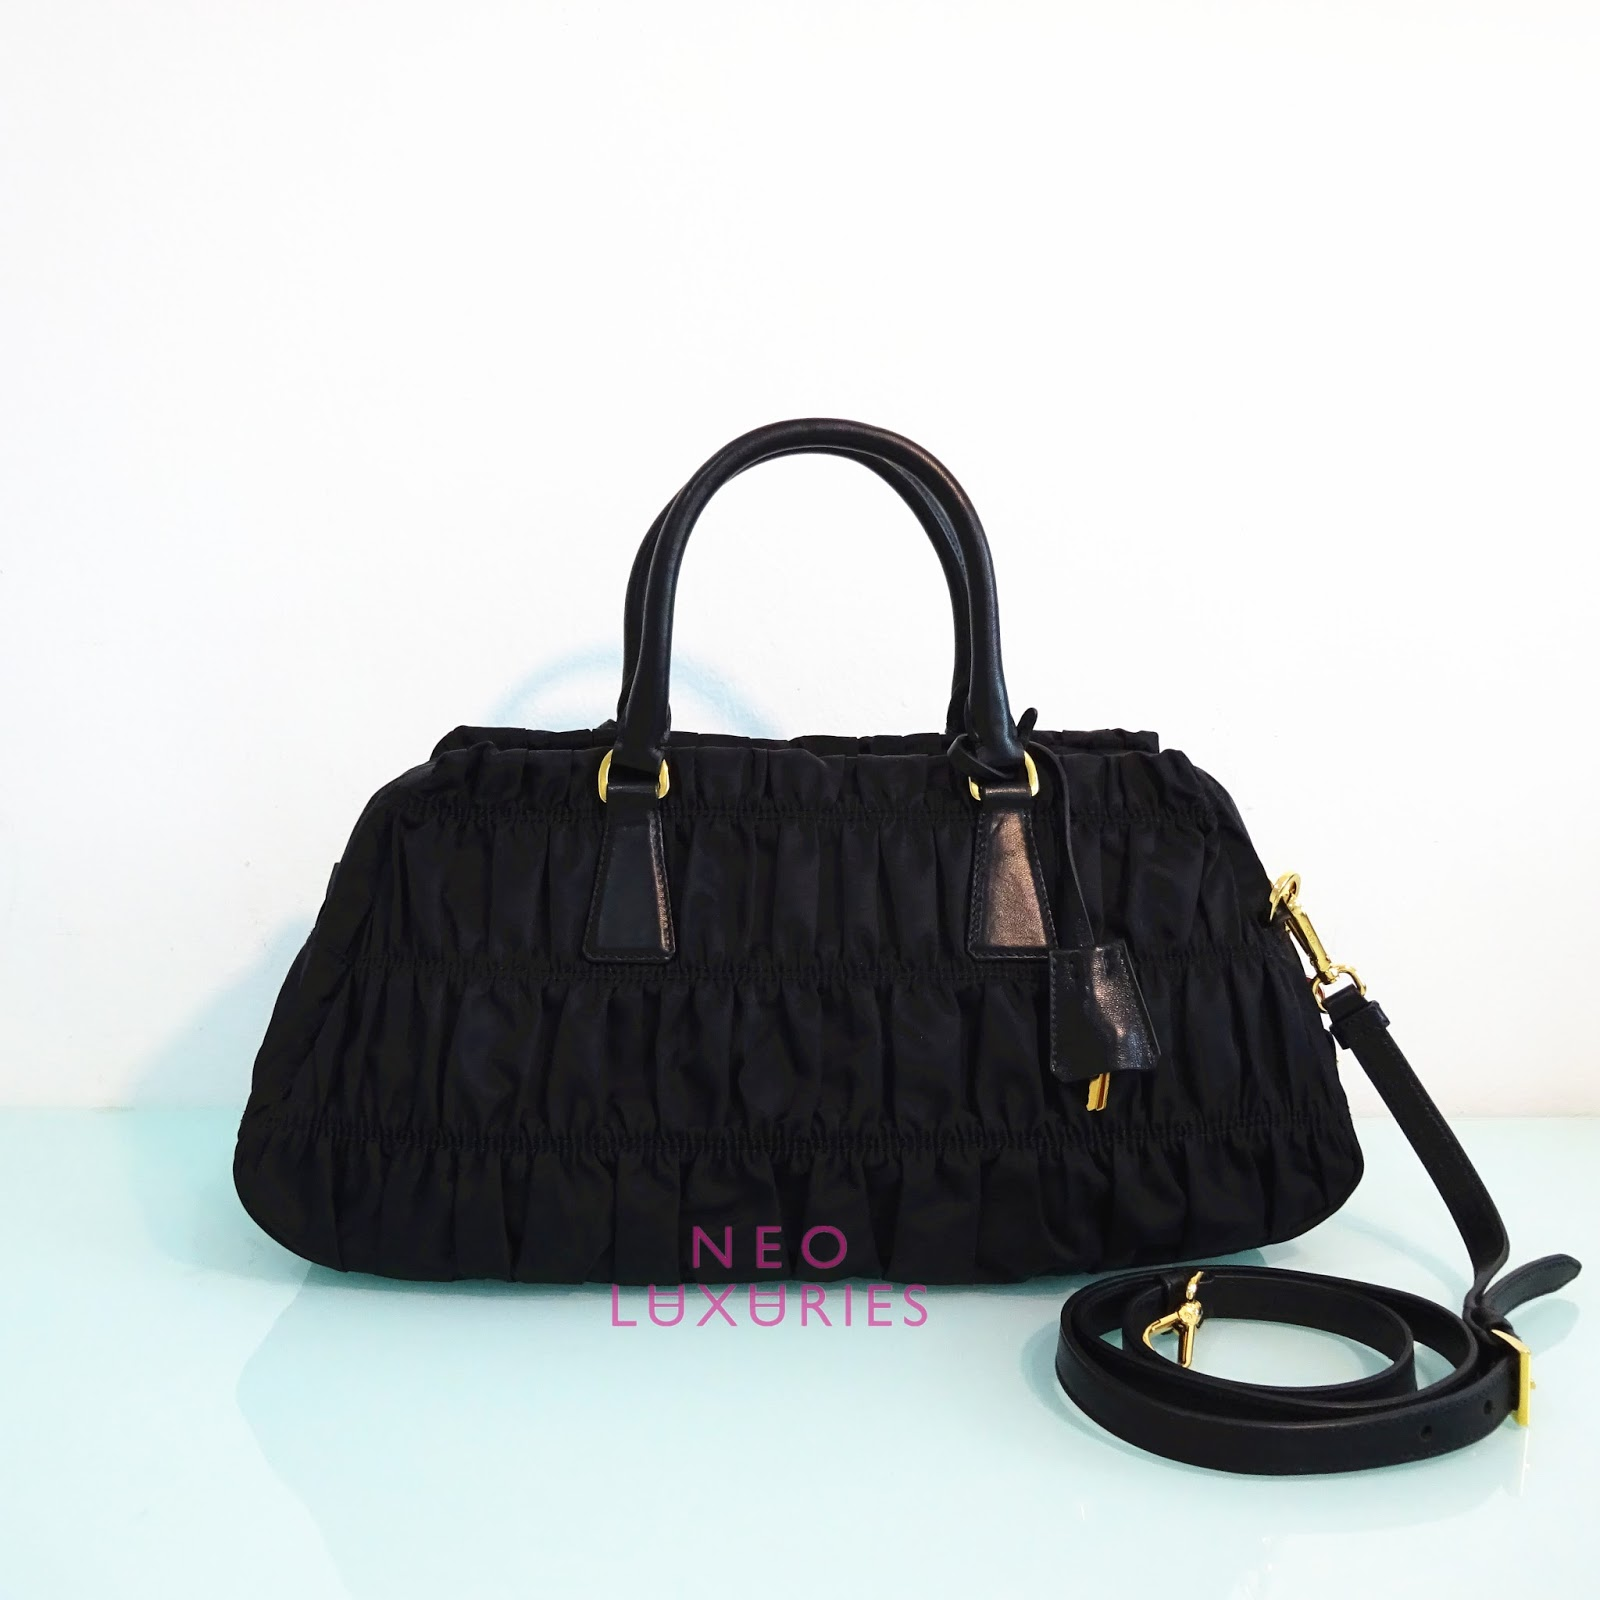 Neo LUXuries: SOLD: PRADA Tessuto/Nappa Gaufre\u0026#39; Small Top Handle ...